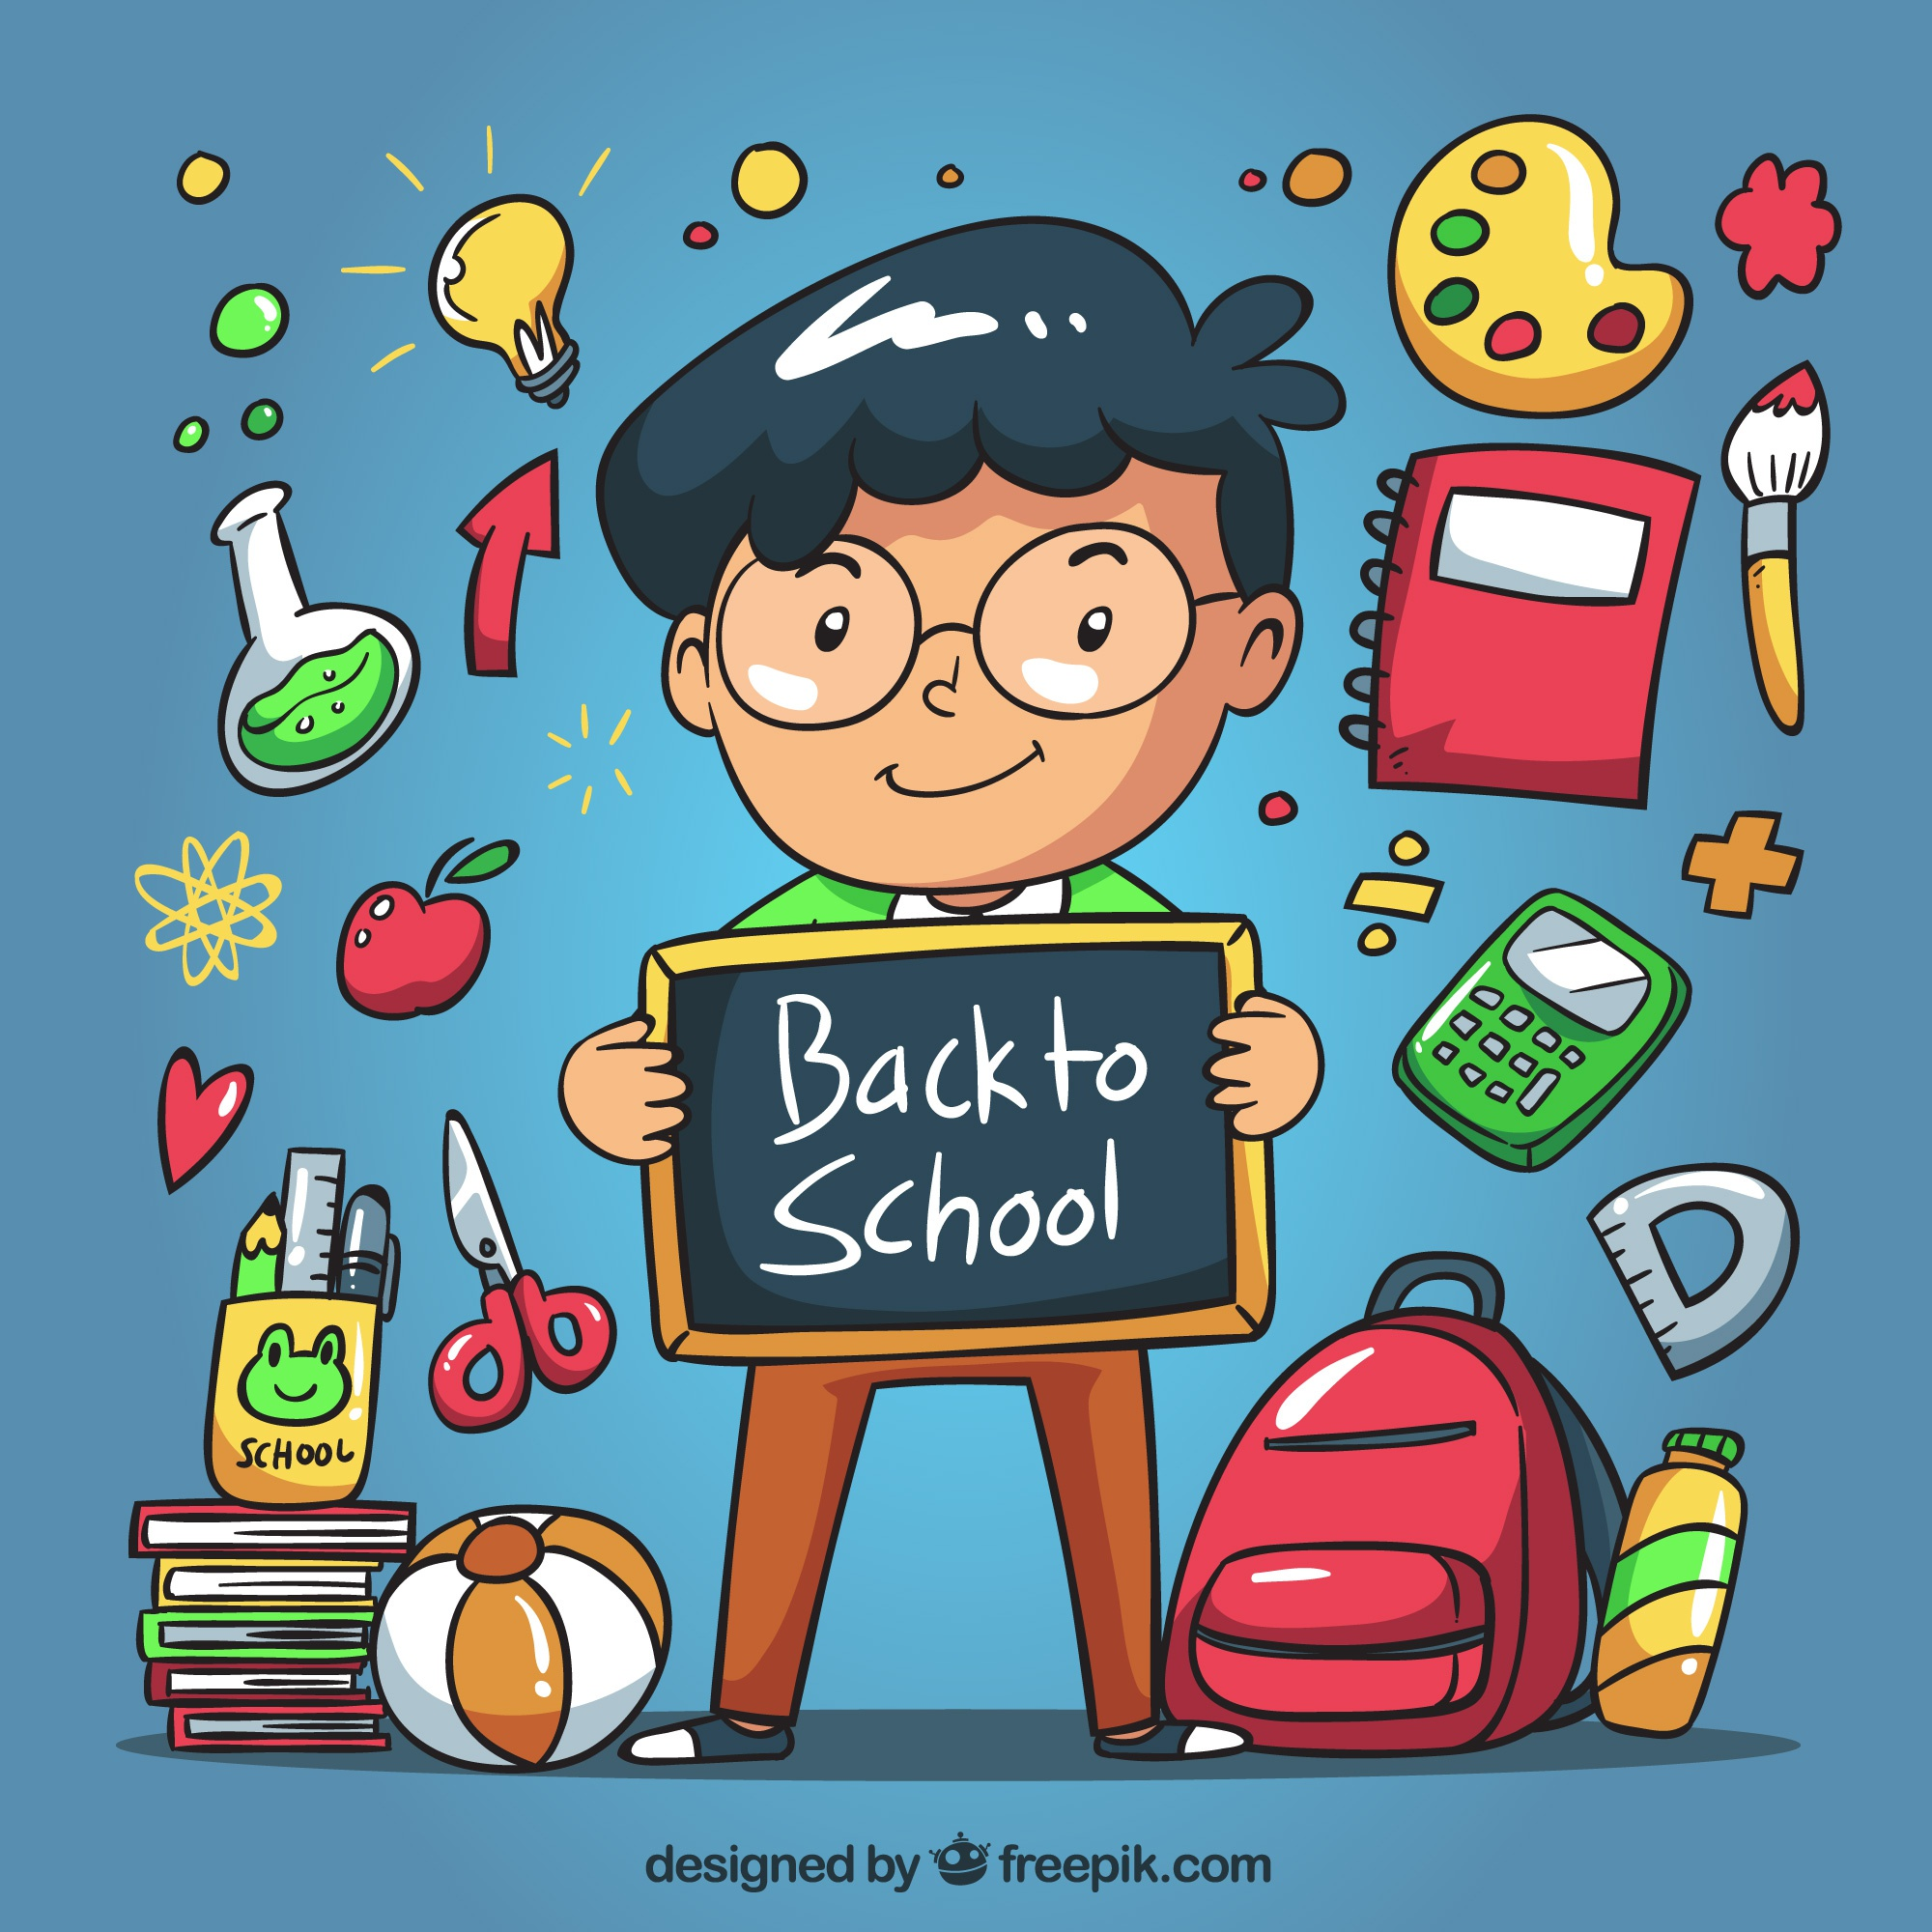 Child's background with a chalkboard and hand drawn school elements